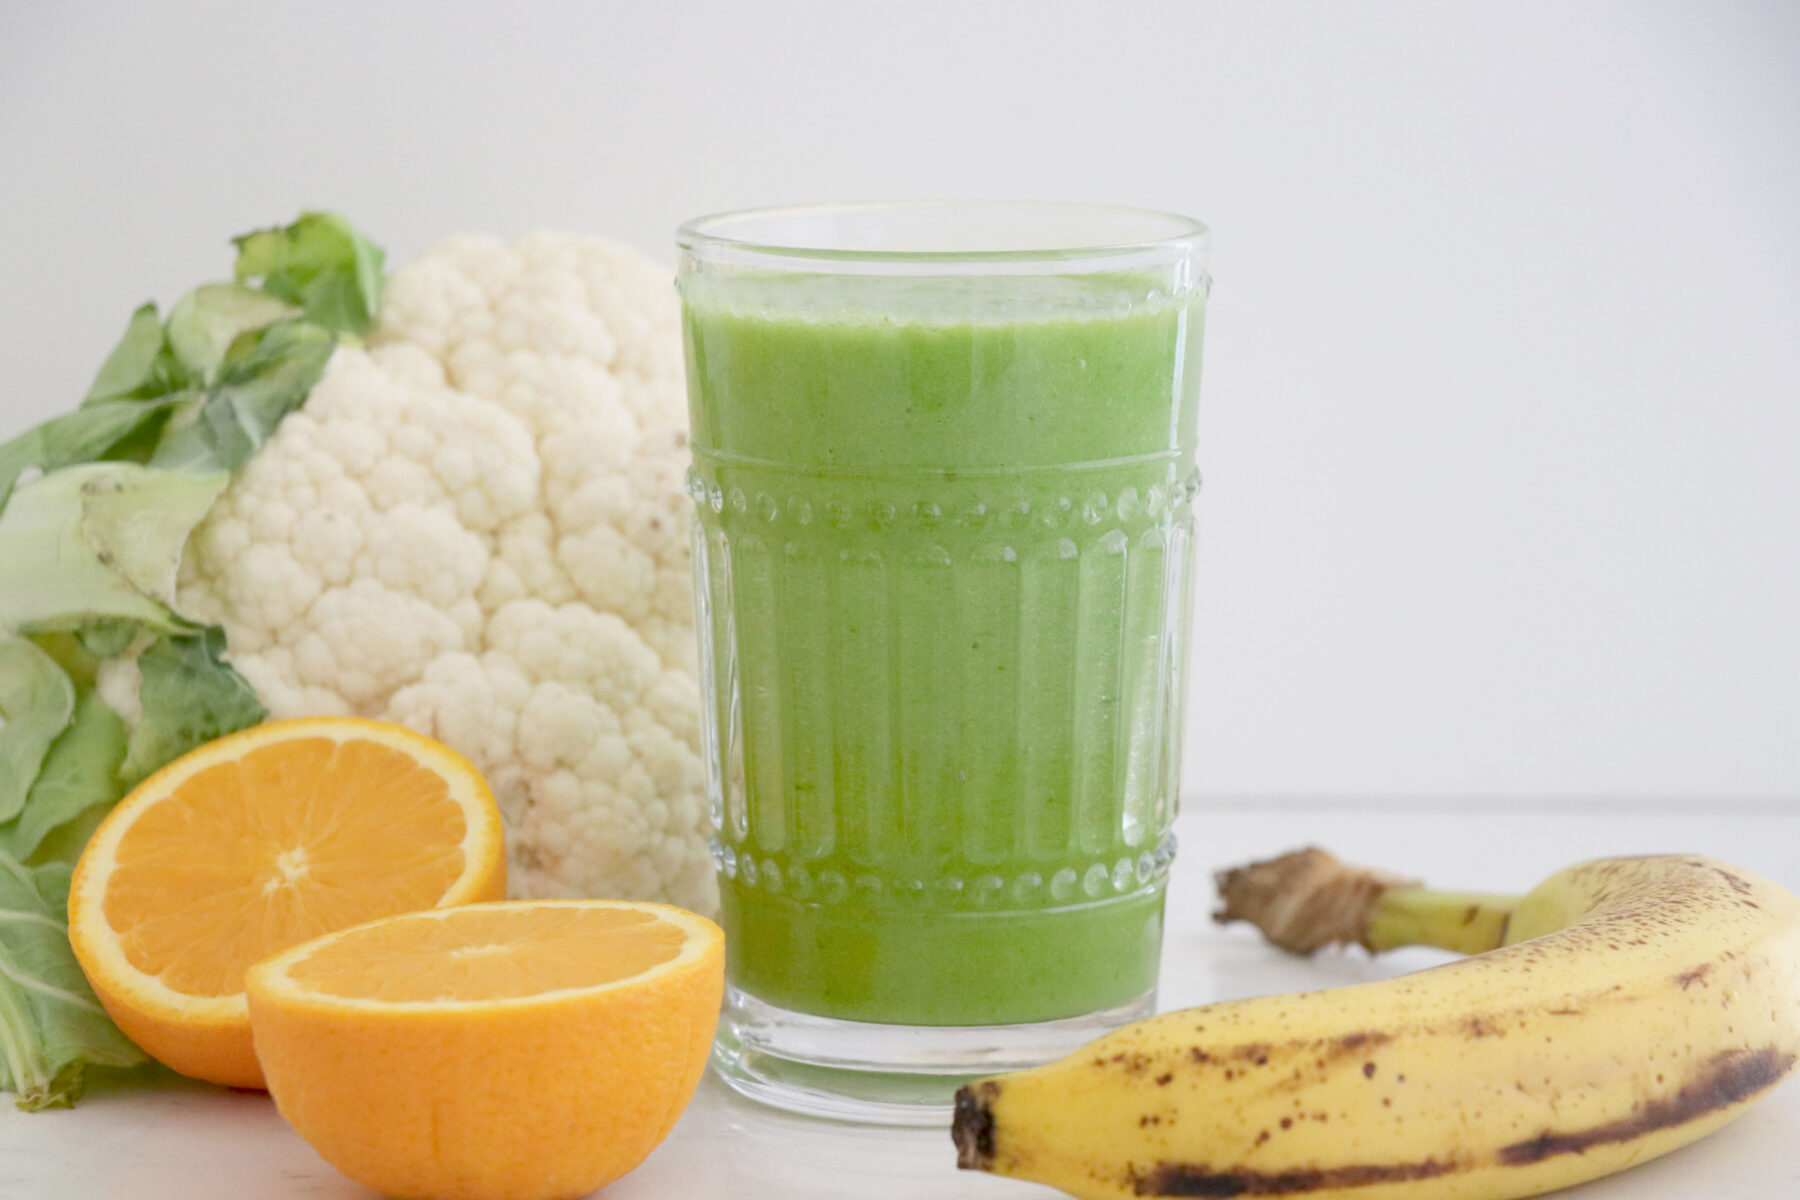 Glass filled with green smoothie surrounded by fruits and veggies.